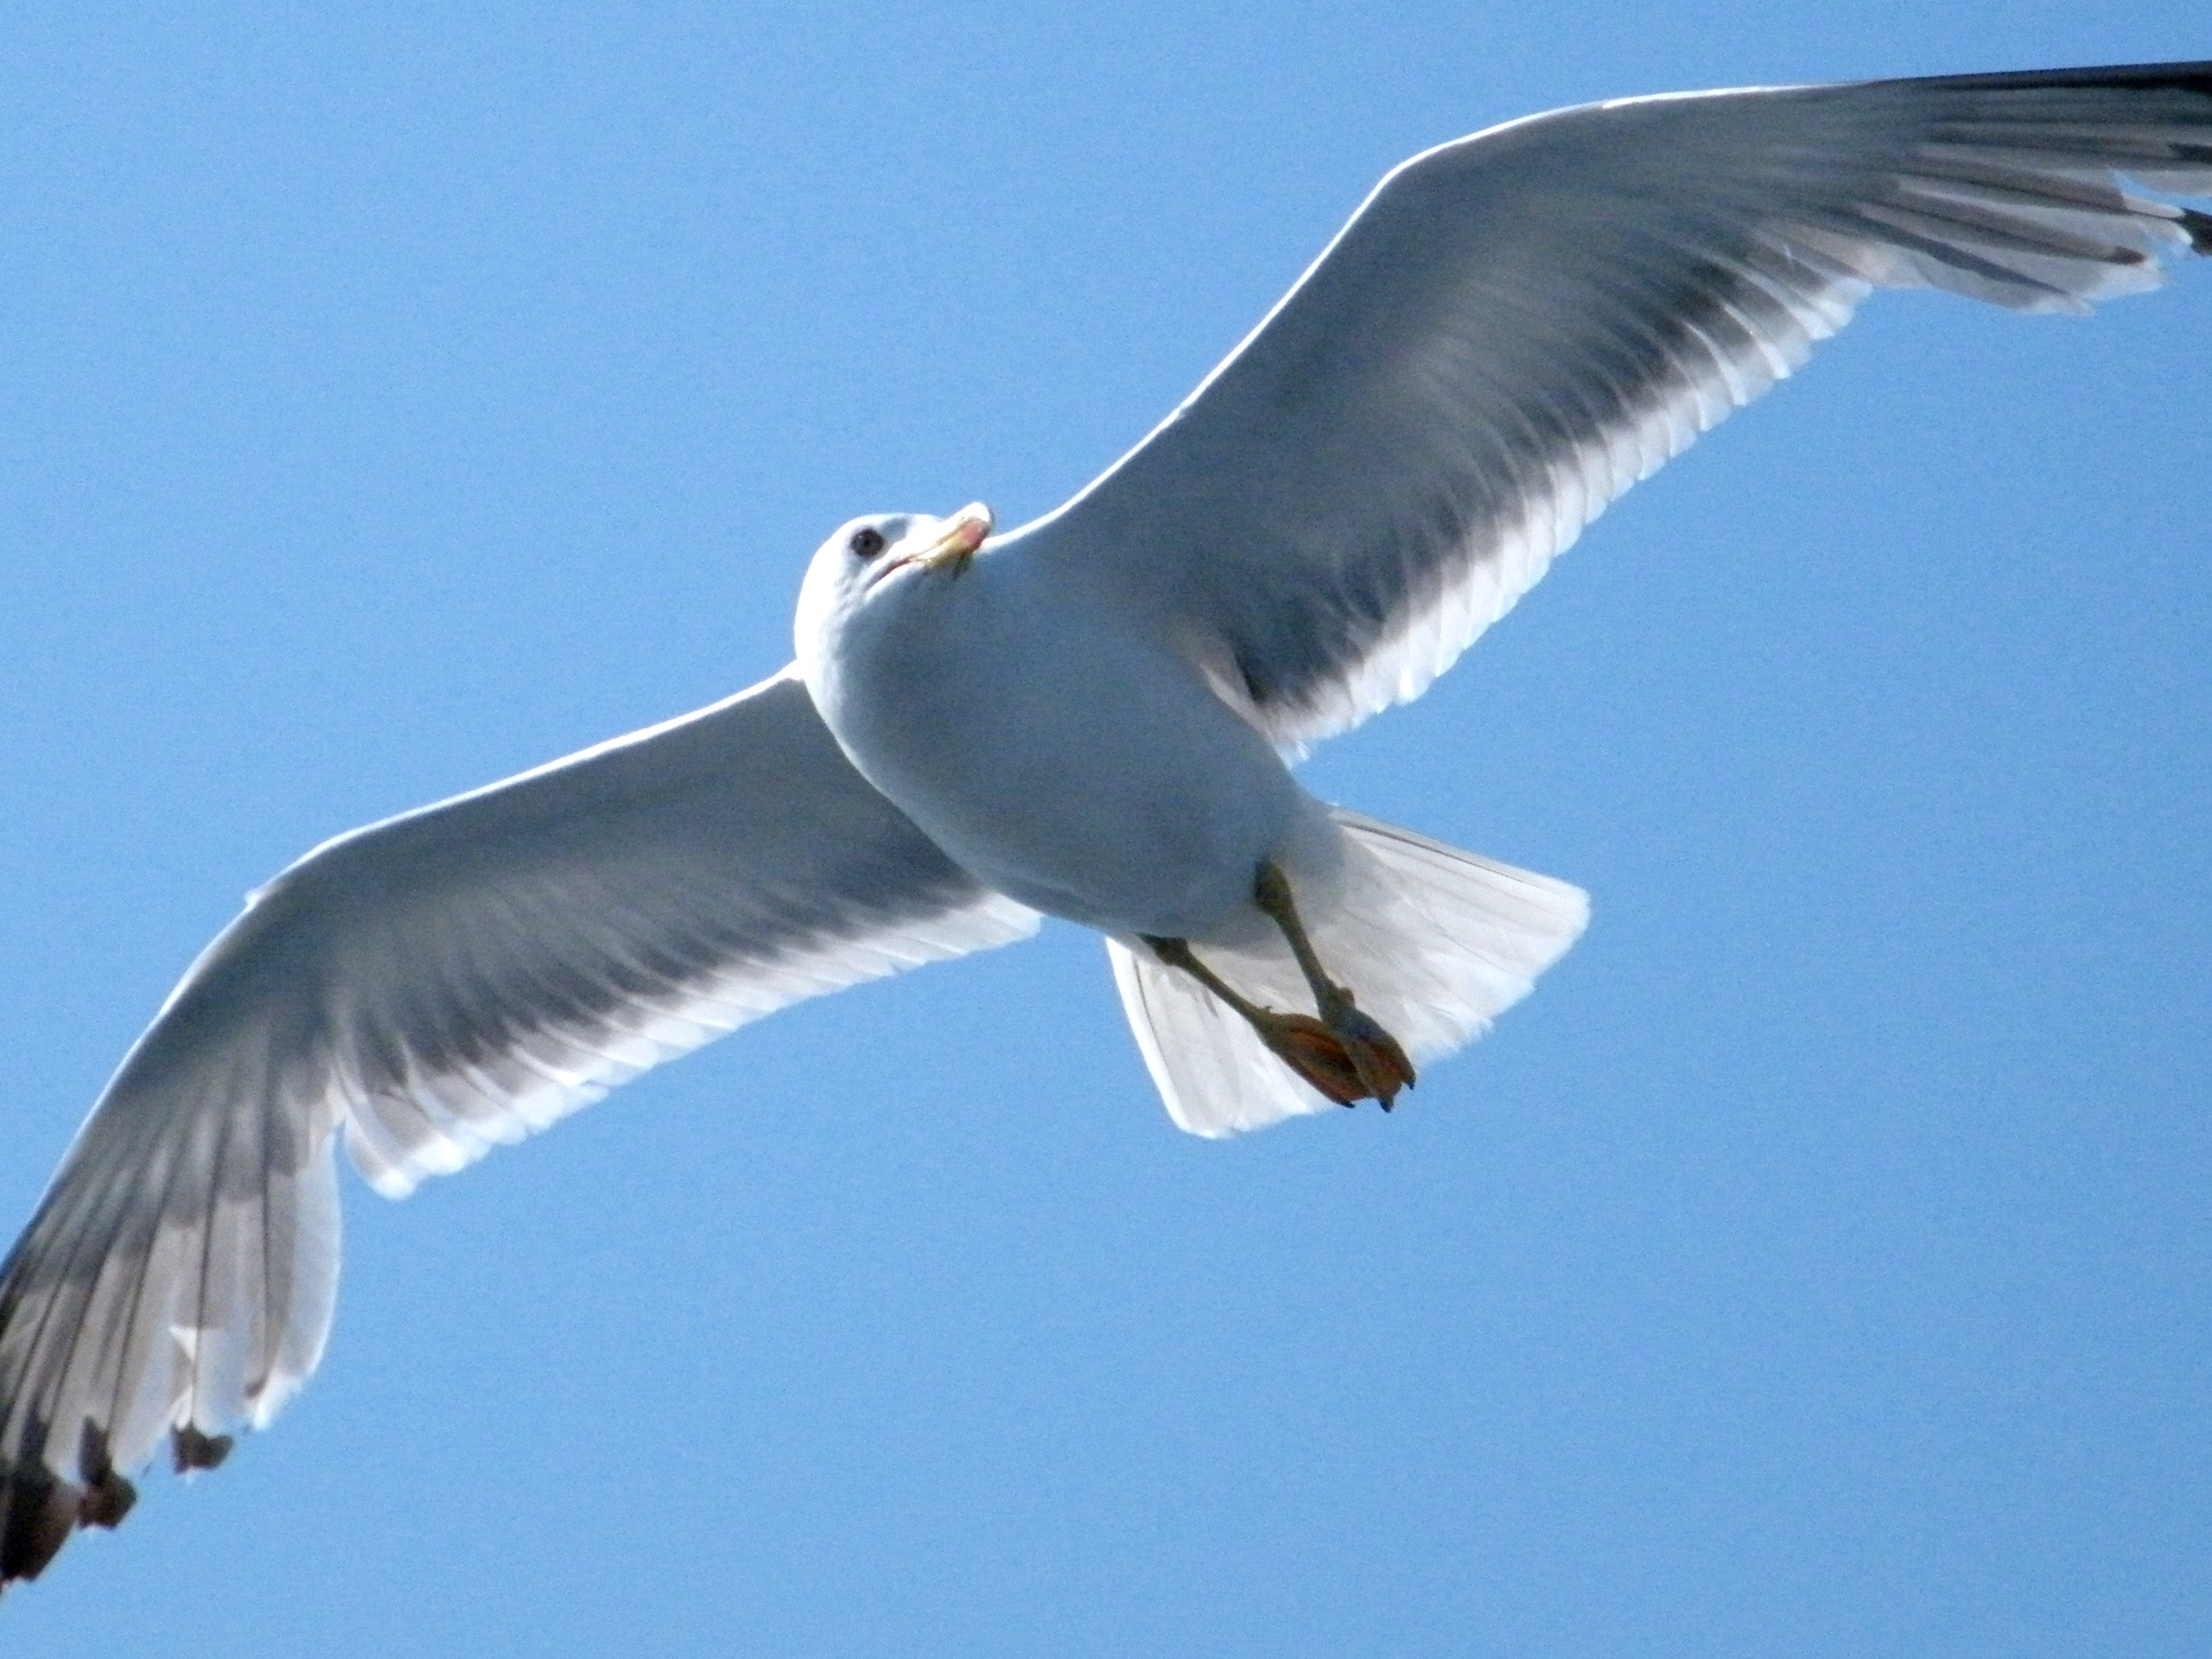 click to free download the wallpaper--Nature Landscape Image, Seagull Flying, a Cool Guy in Fast Speed, Fishes, Take Care!